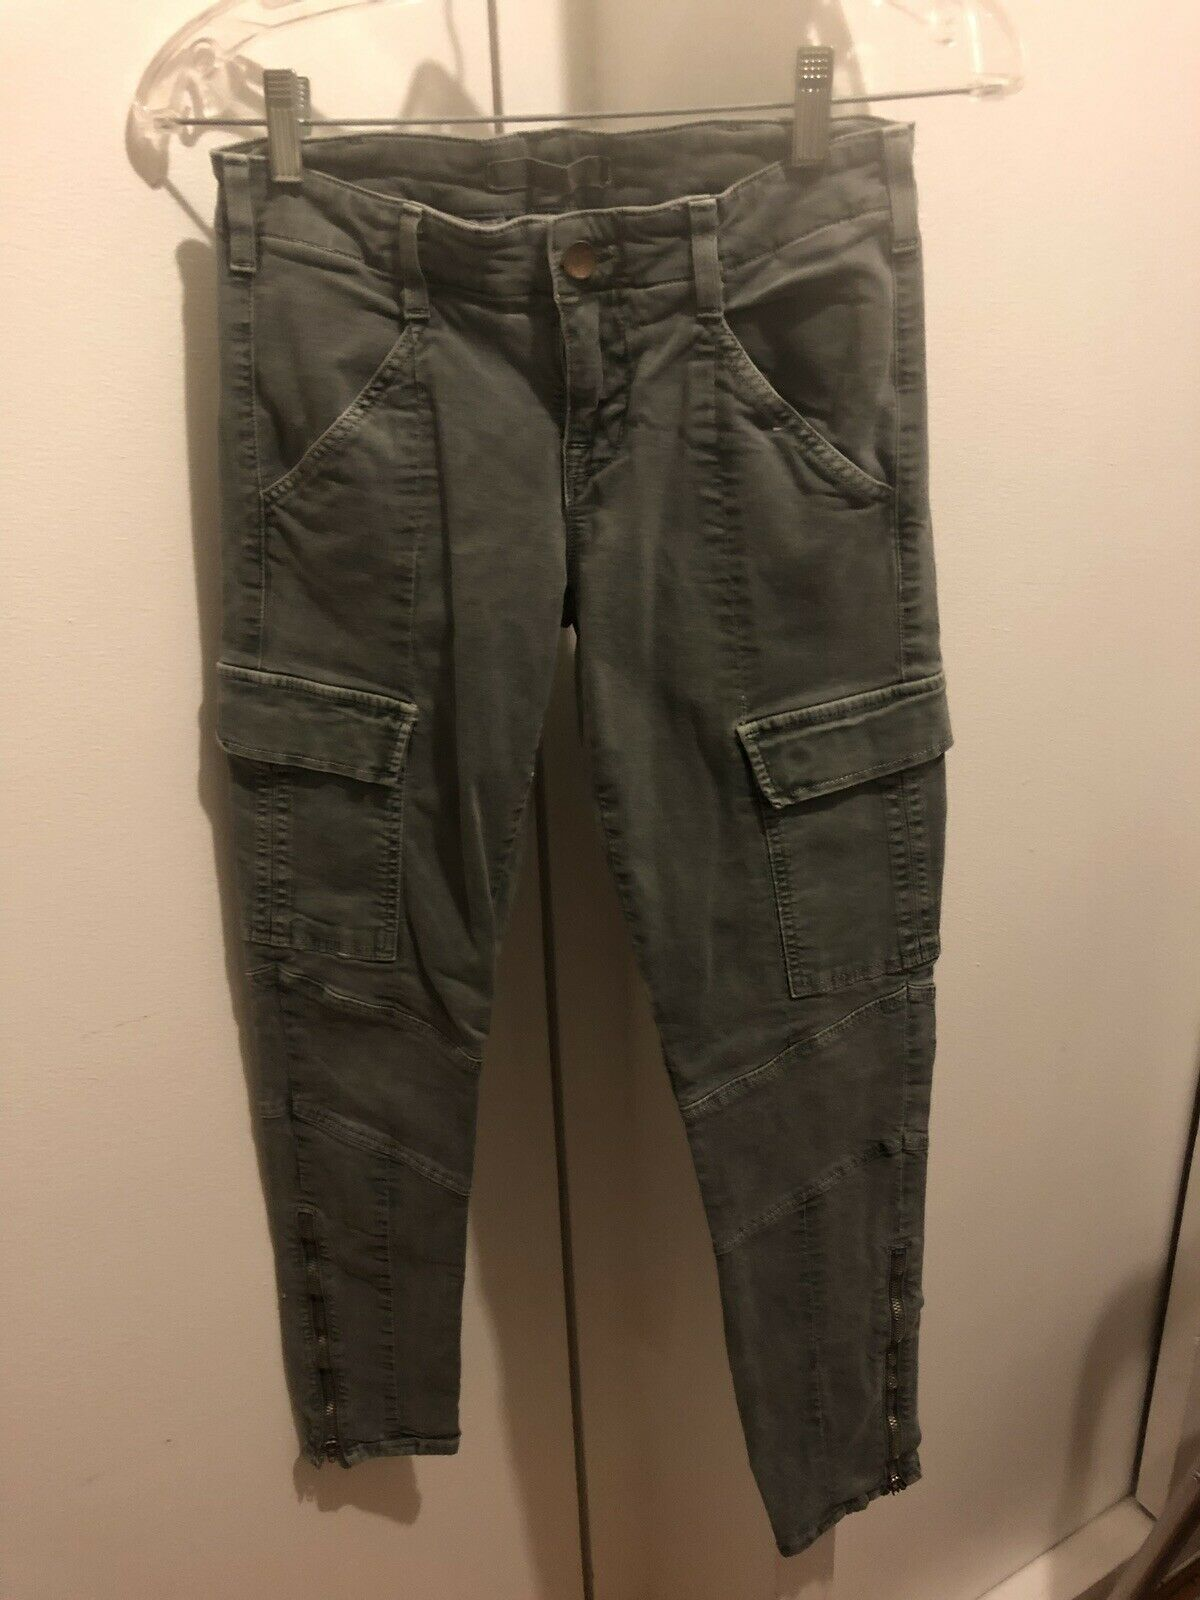 J brand jeans Army Cargo Pants Size 25